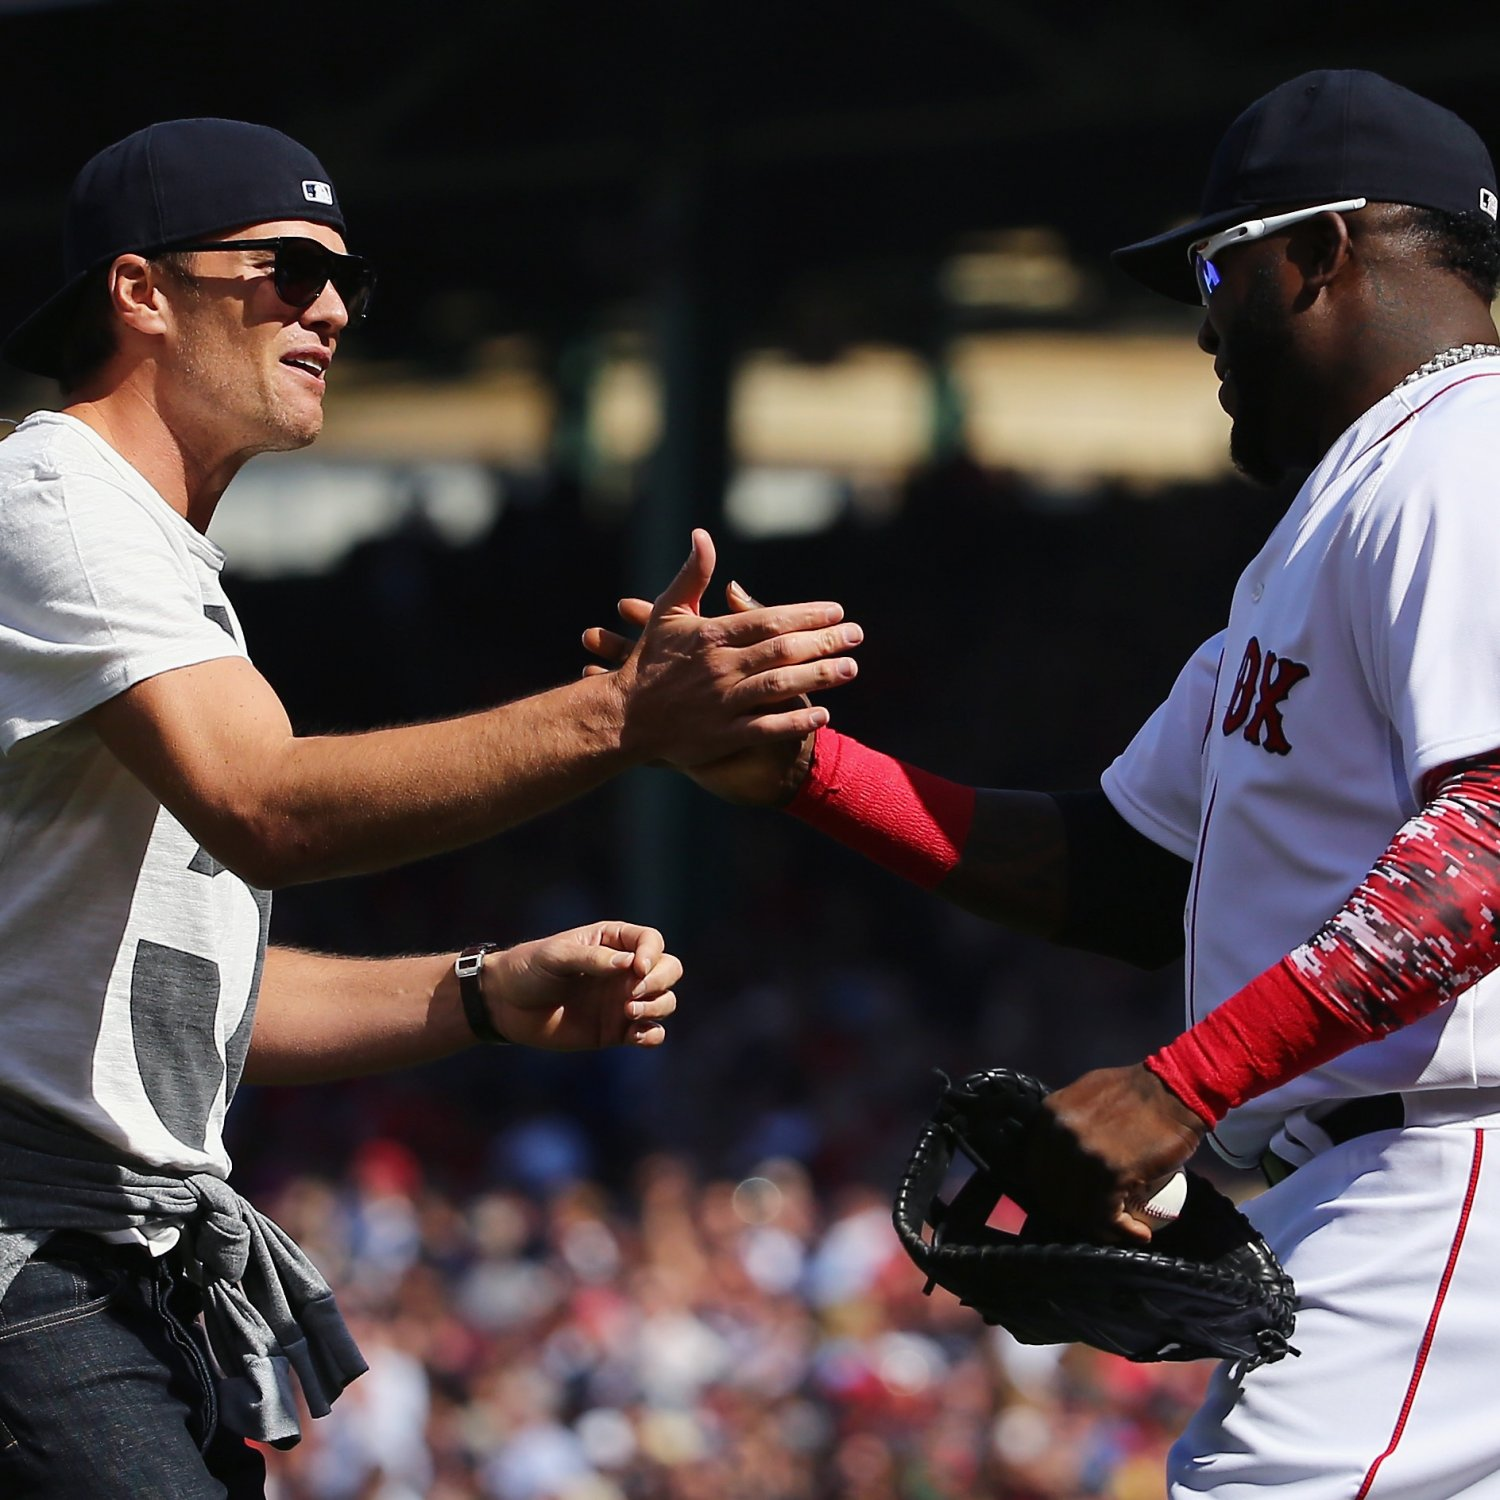 Tom Brady Salutes David Ortiz, Asks Him to Change Mind About Retirement | Bleacher Report